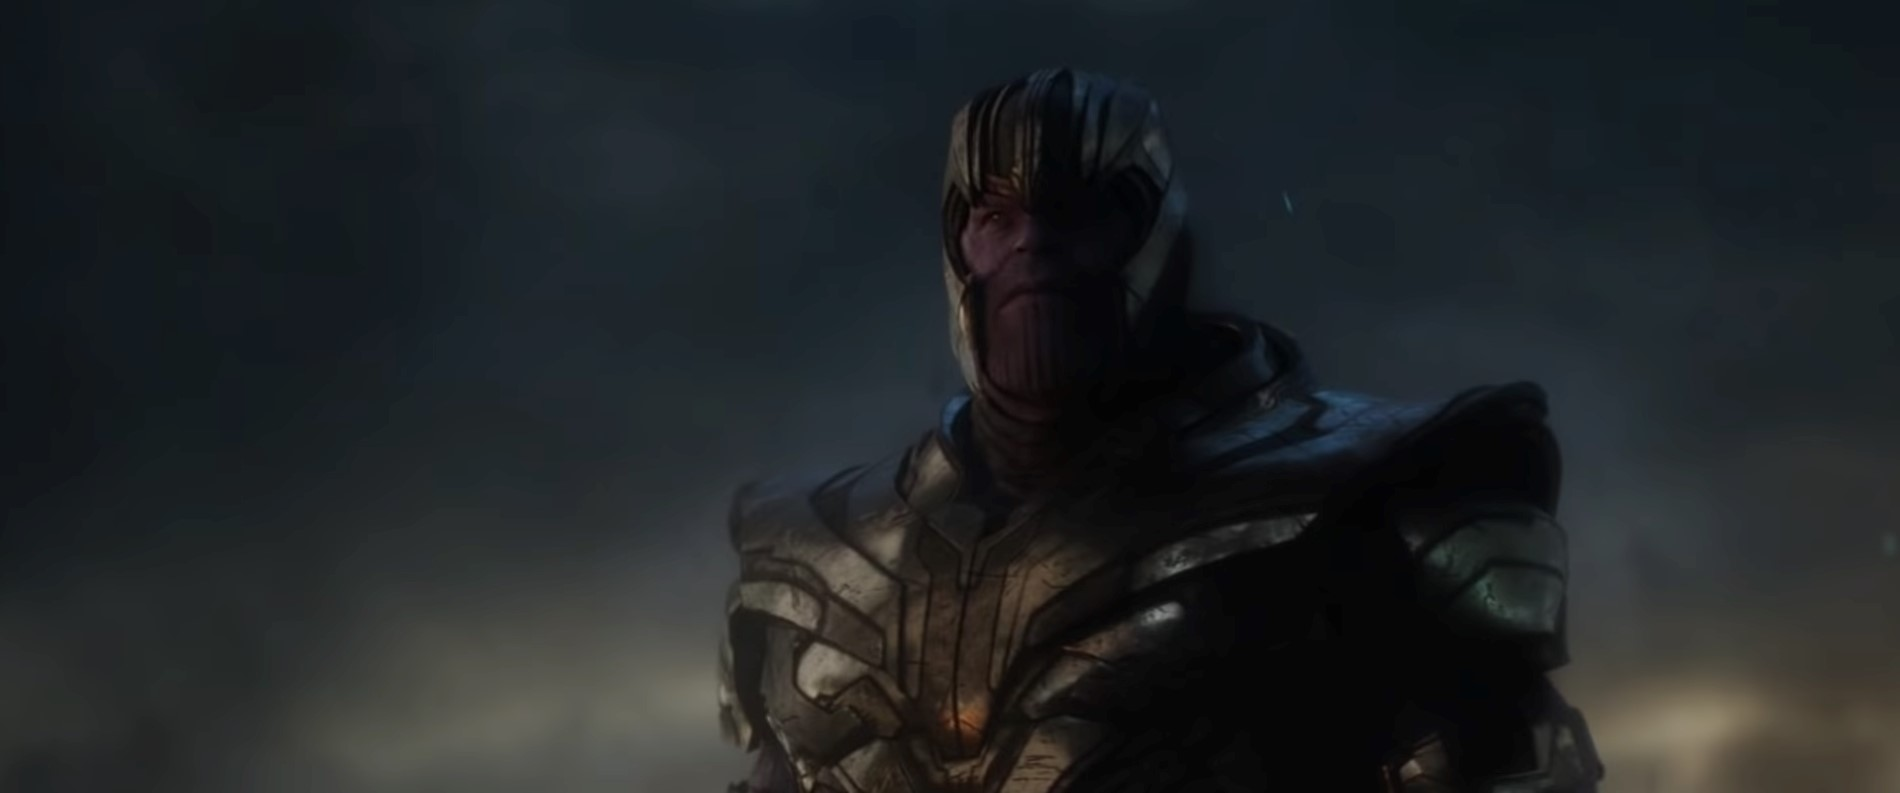 Photo of Josh Brolin Gives an Amazing Reason For Thanos' Armor in Avengers: Endgame